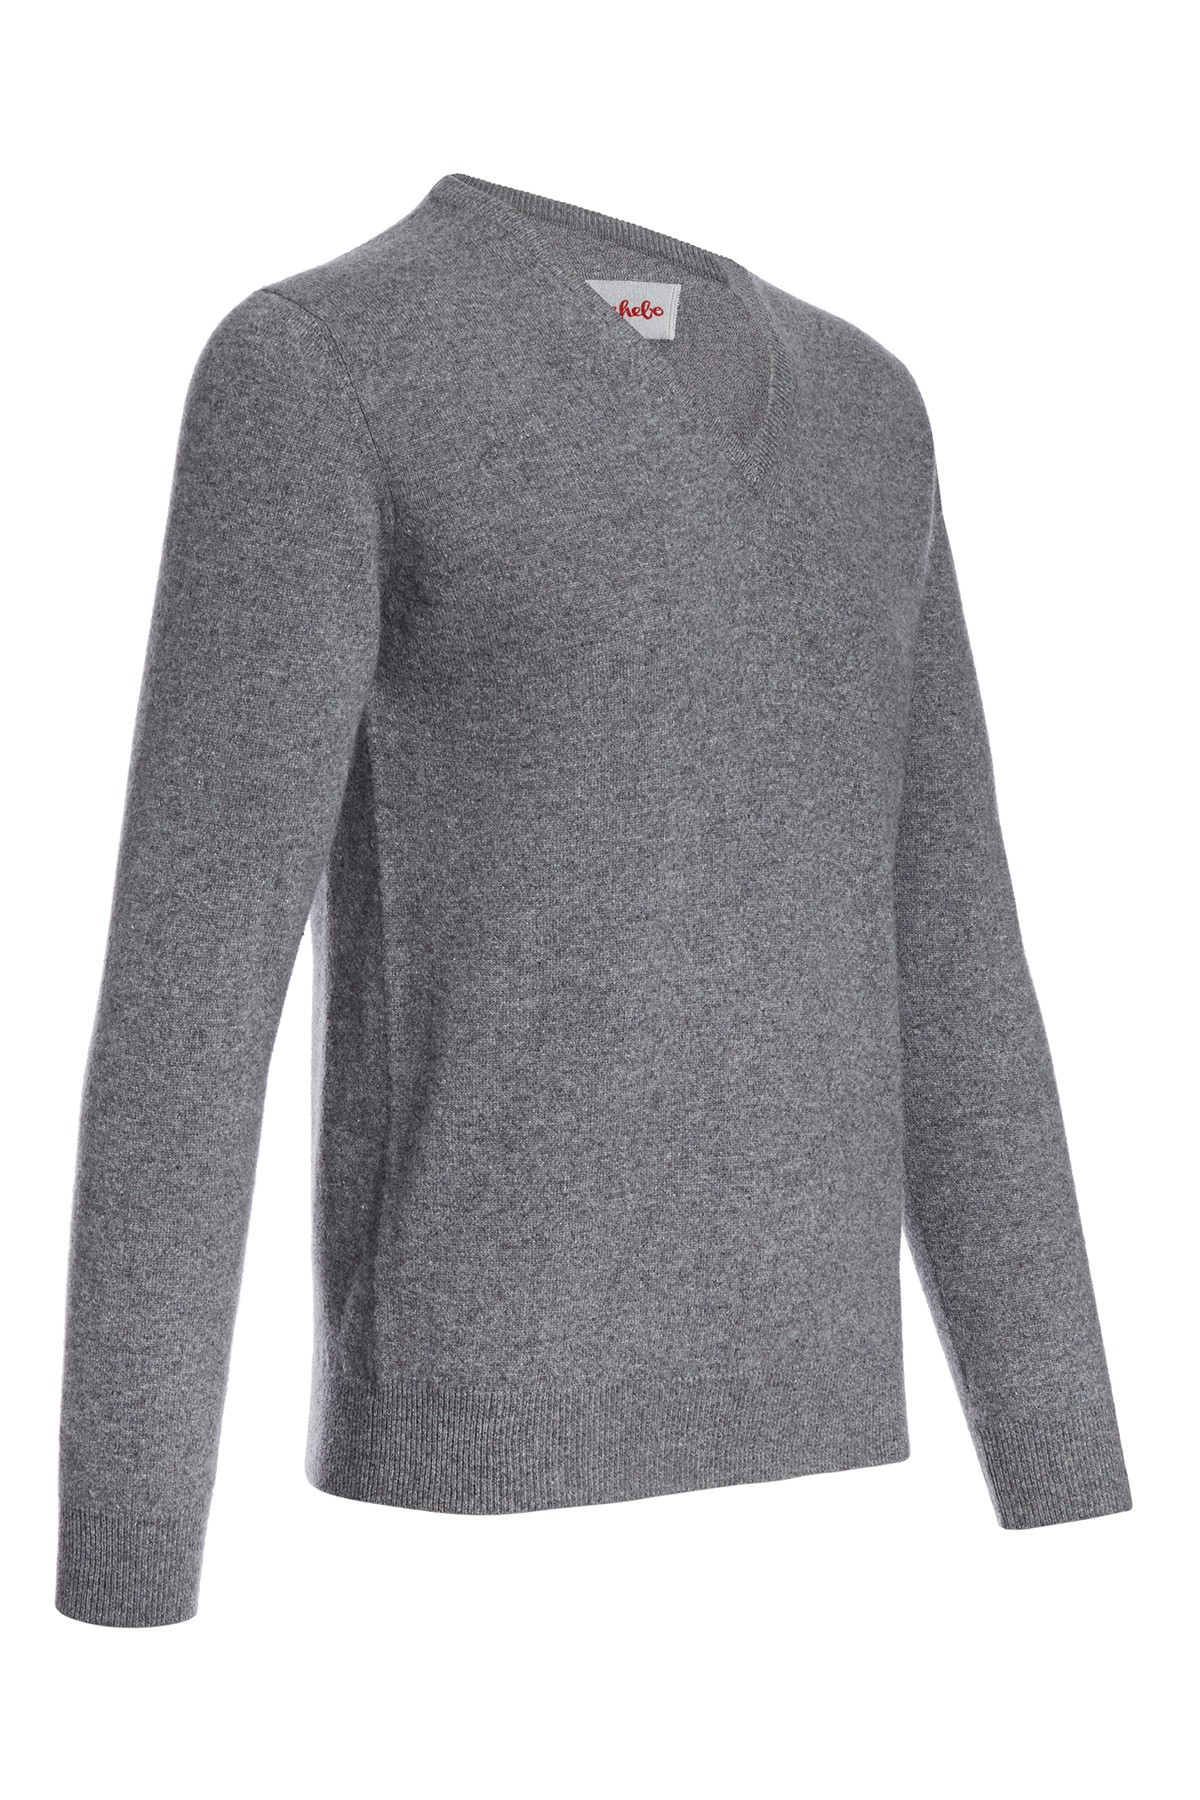 Men's V-neck cashmere sweater derby grey